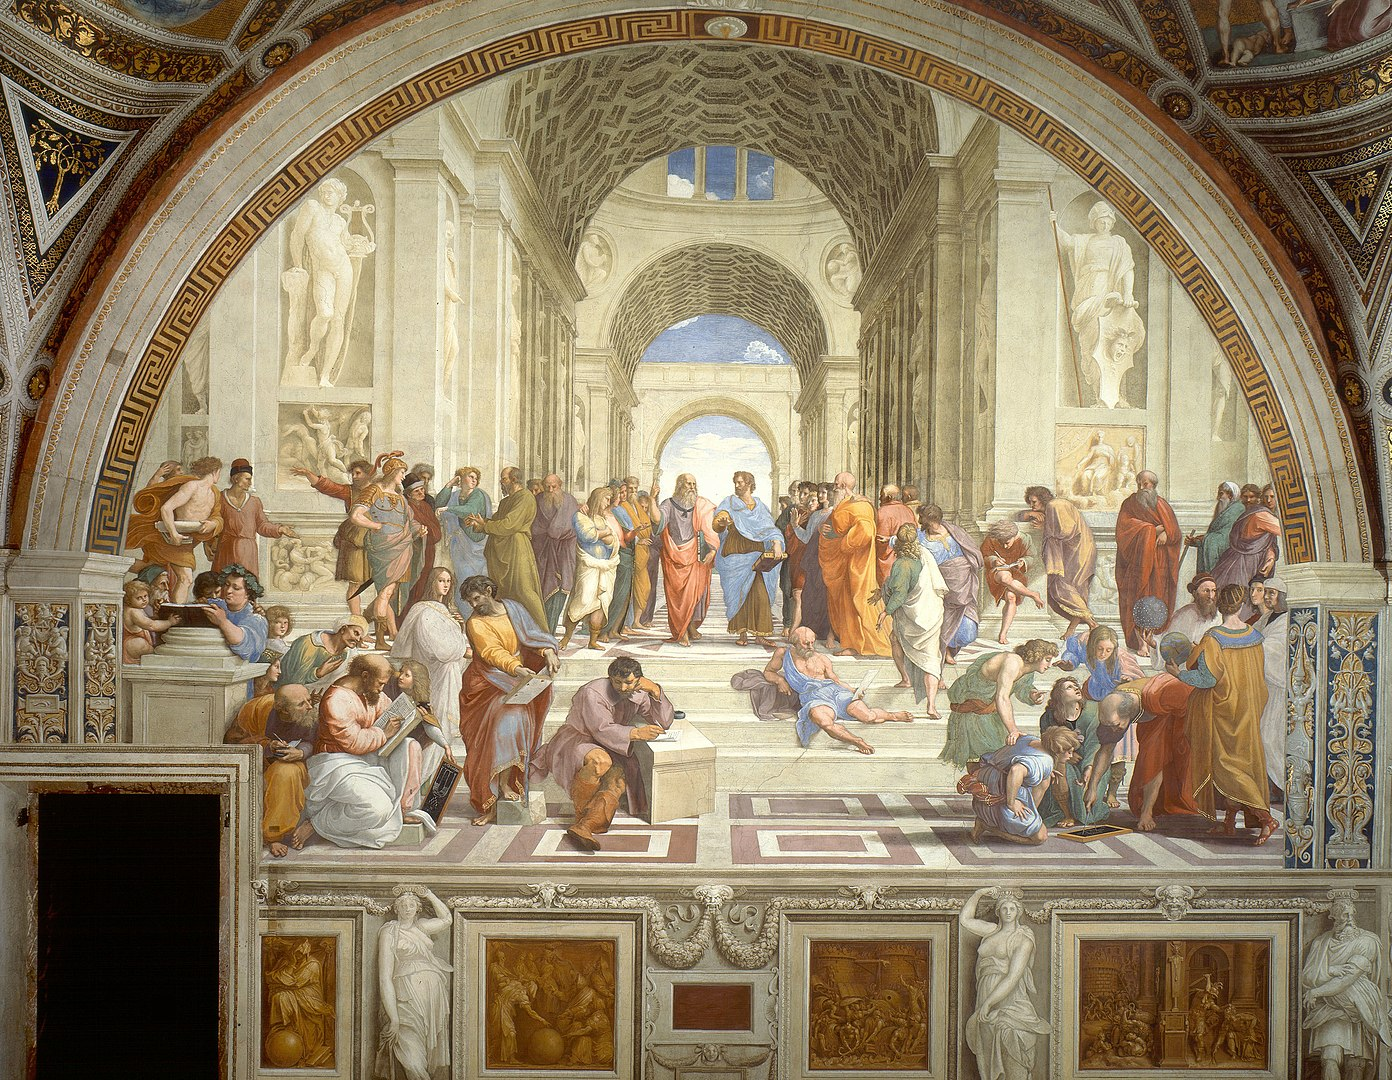 The School of Athens, by Raphael (painted between 1509-1511), is one of the kinds of paintings that represents art that I love.